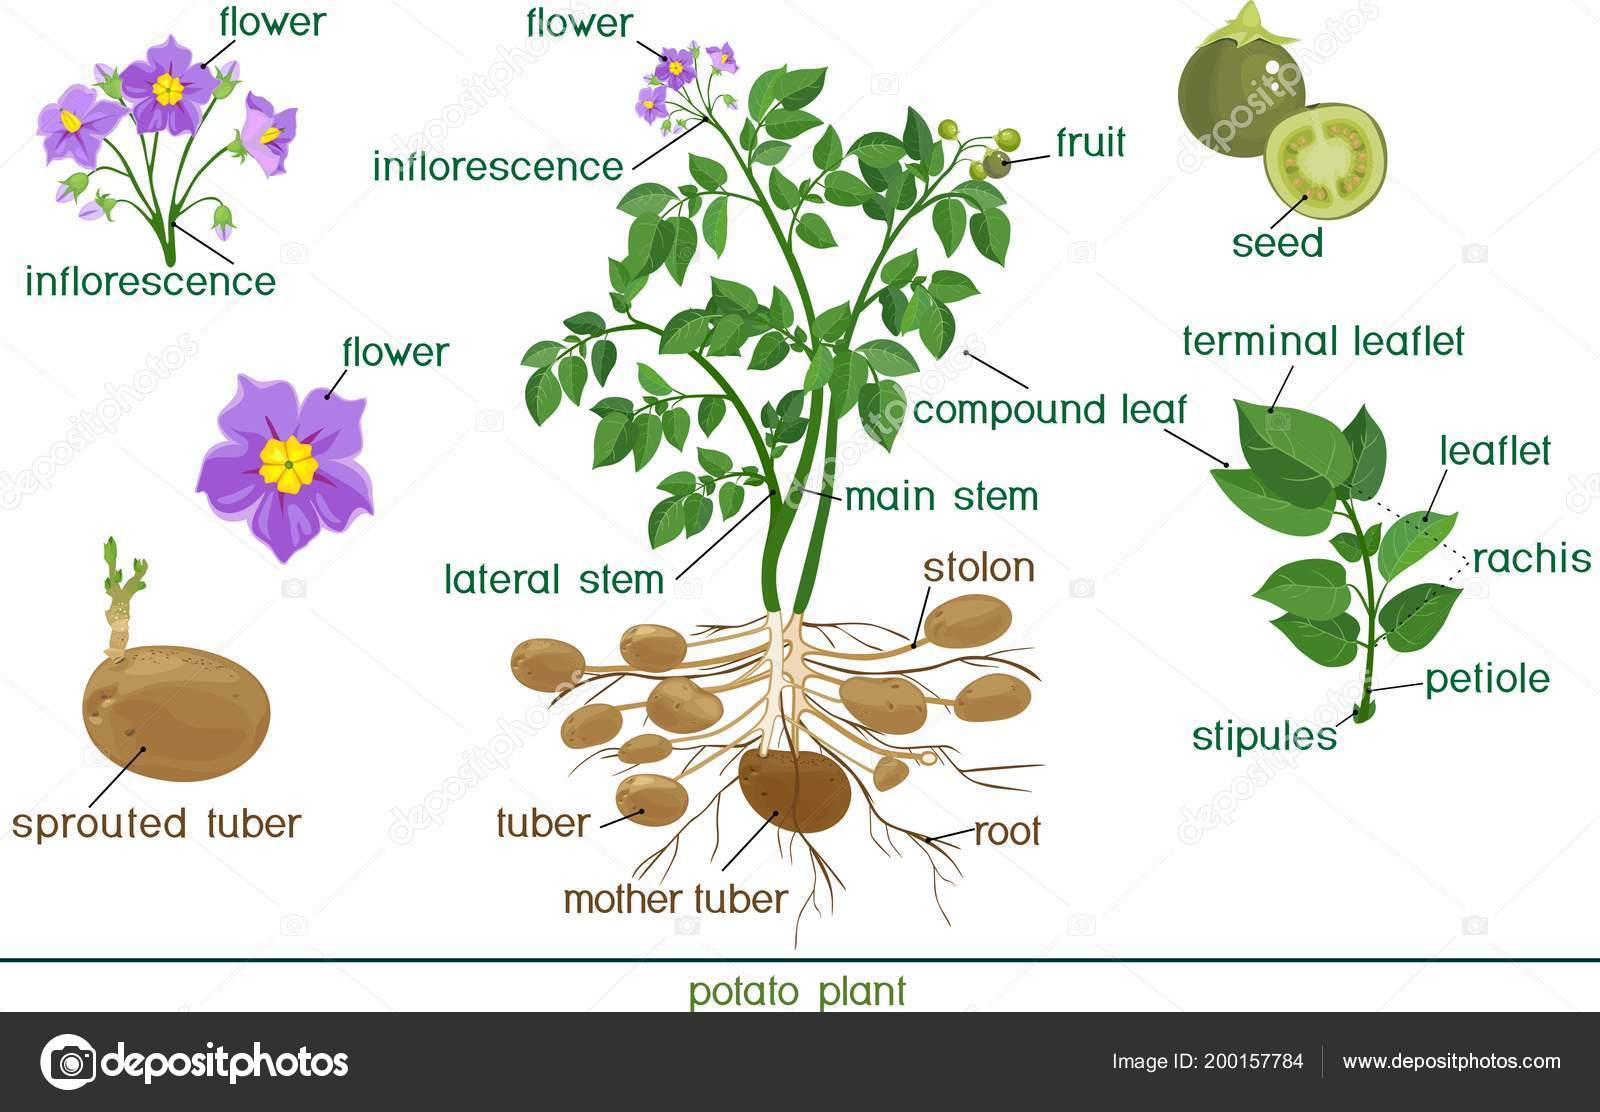 Parts Plant Morphology Potato Plant Title